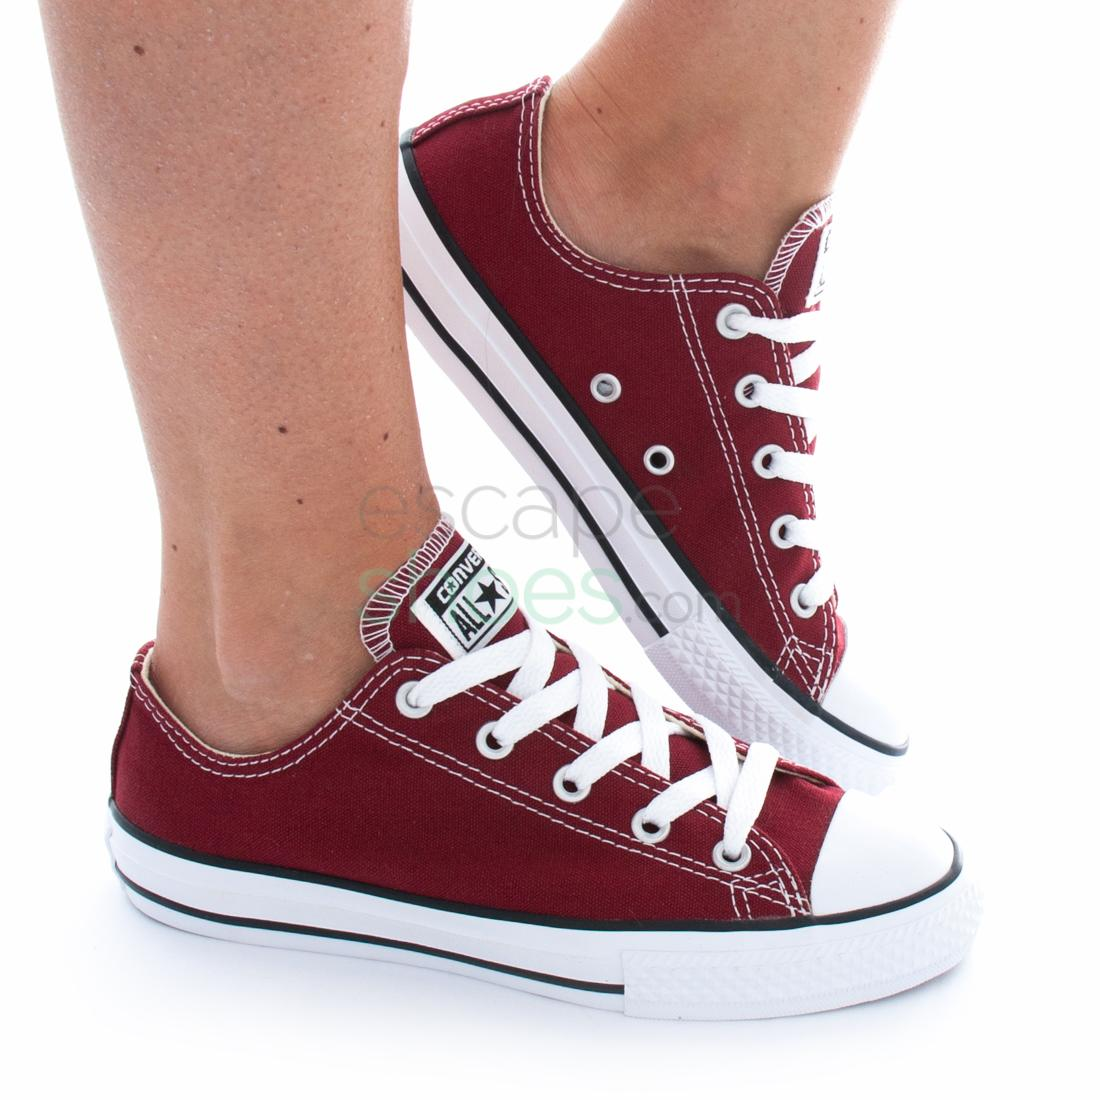 CONVERSE Chuck Taylor All Star 353870C Red Block